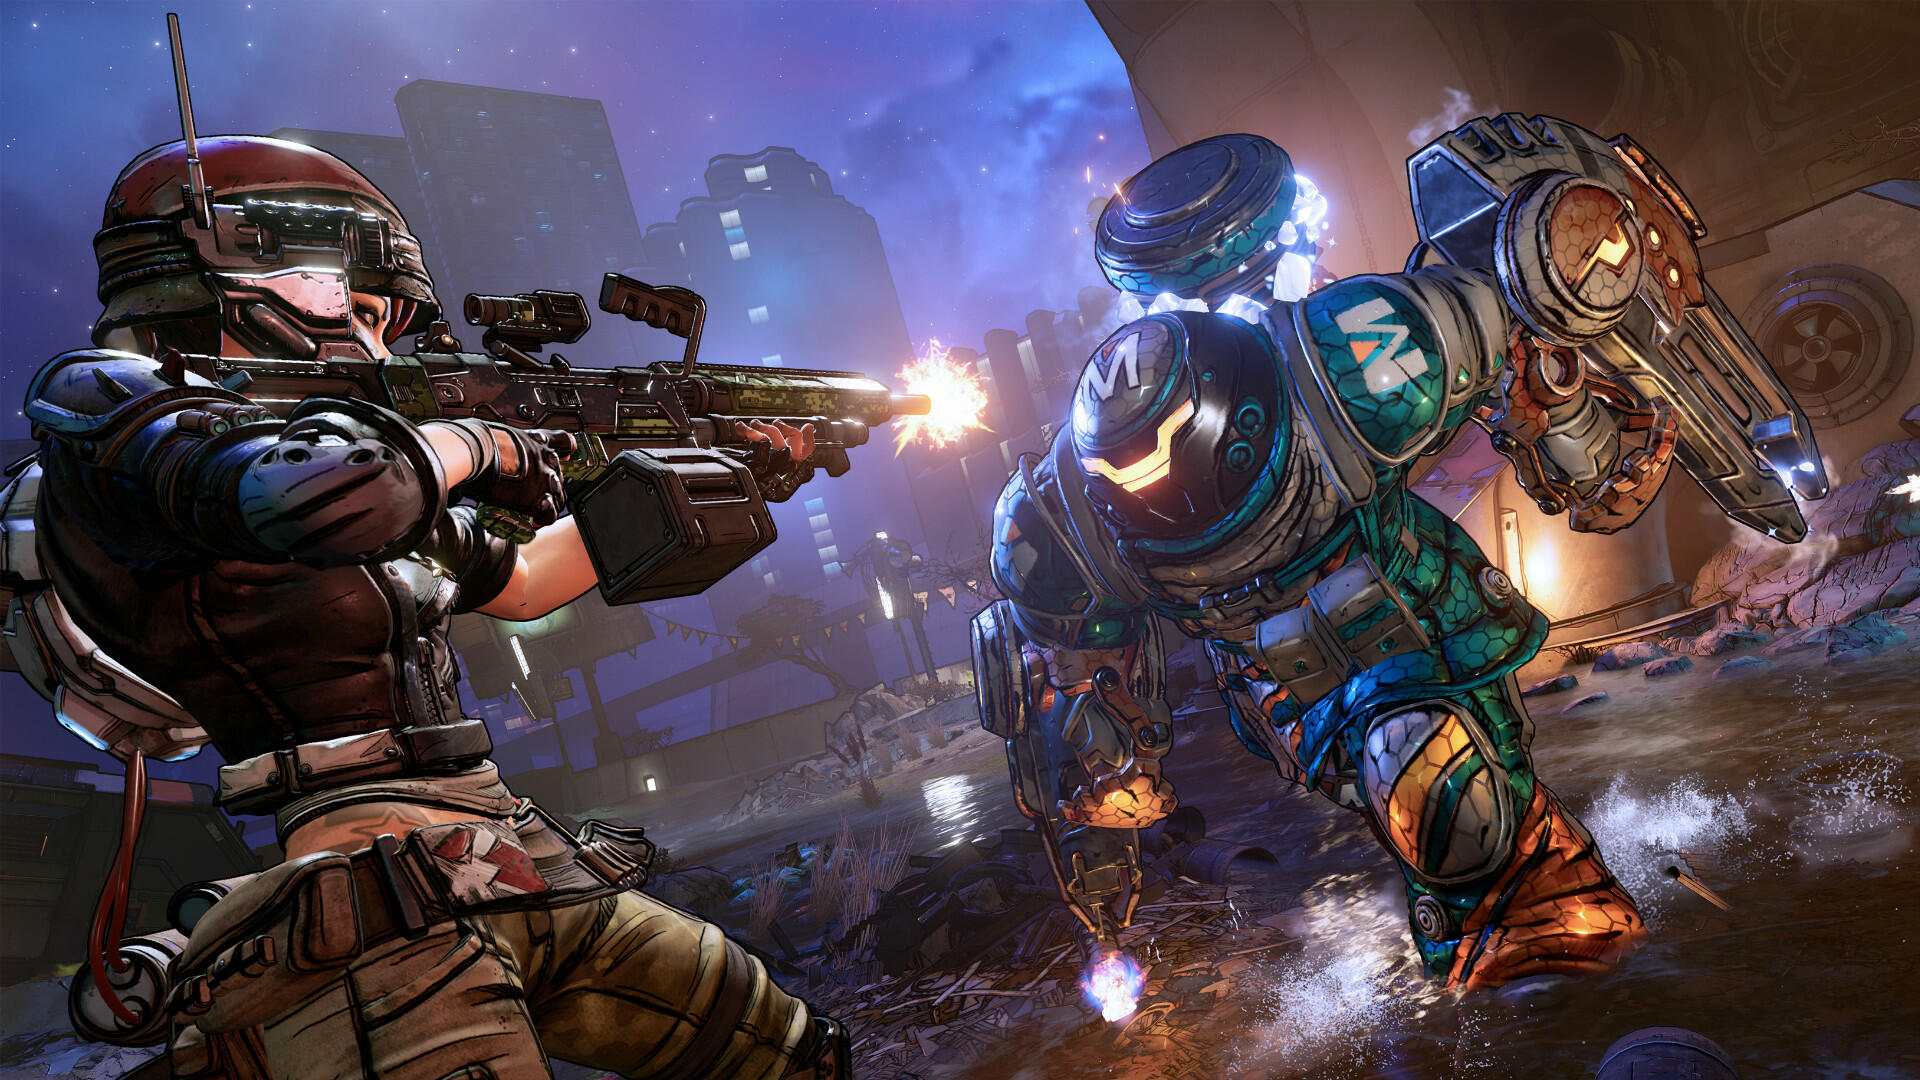 Borderlands 3 is the Fastest-Selling 2K Game Ever